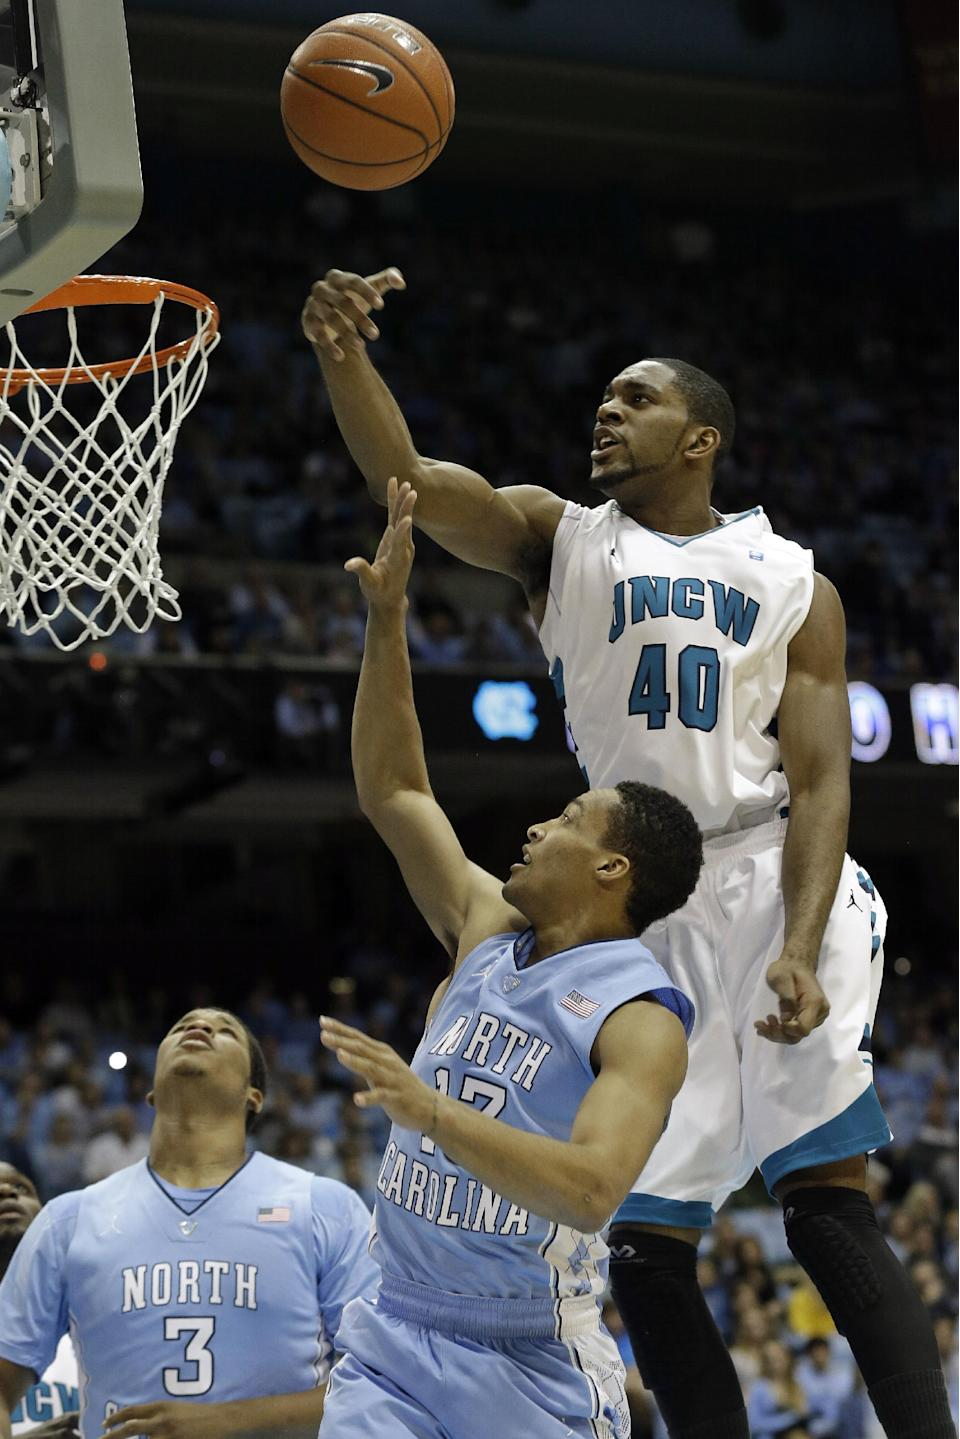 North Carolina's J.P. Tokoto (13) drives to the basket as UNC Wilmington's Cedrick Williams (40) blocks during the first half of an NCAA college basketball game in Chapel Hill, N.C., Tuesday, Dec. 31, 2013. North Carolina's Kennedy Meeks (3) stands under the basket. (AP Photo/Gerry Broome)